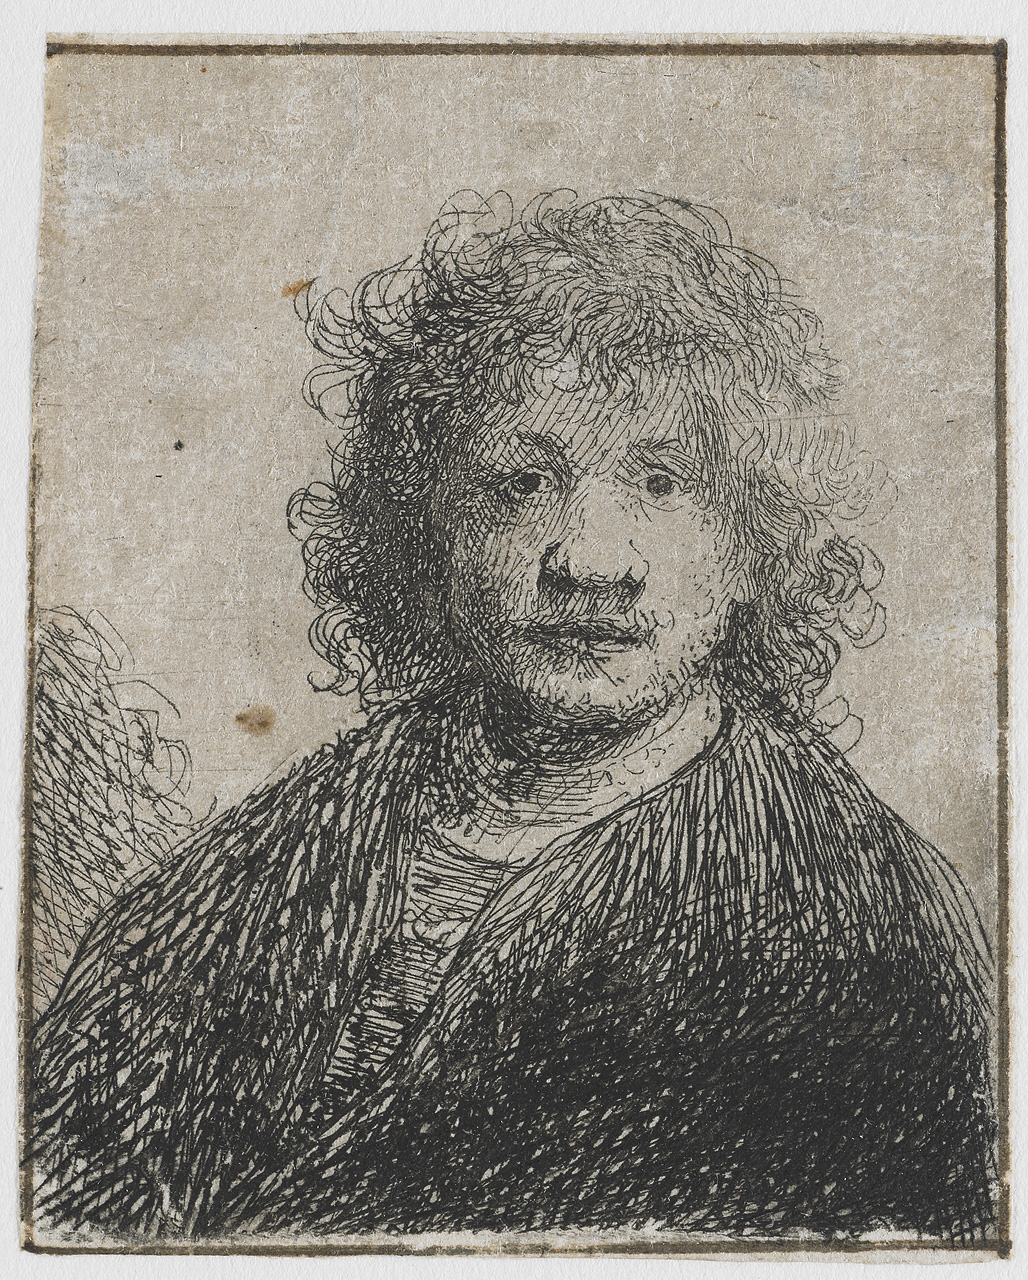 Self portrait with broad nose. Rembrandt van Rijn.